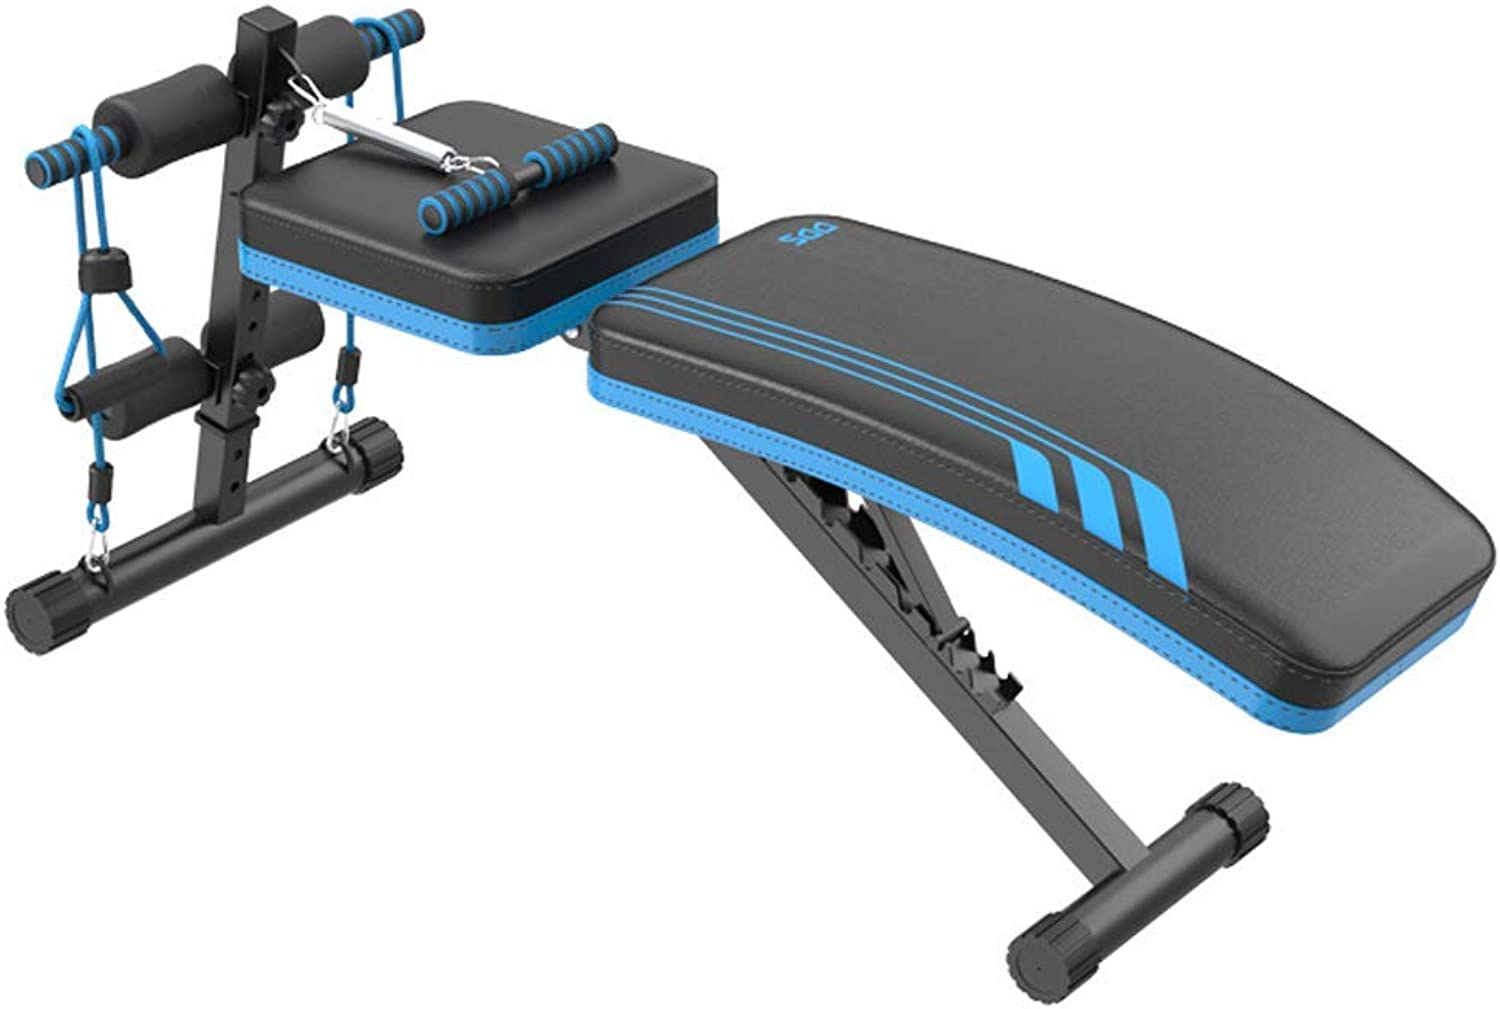 PLLP Fitness Chair, Dumbbell BenchMultifunctional Dumbbell Bench,Adjustable Sit up Bench Slant Board Pro Ab,Adjustable Workout Abdominal Exercise Multifunction Bench Board